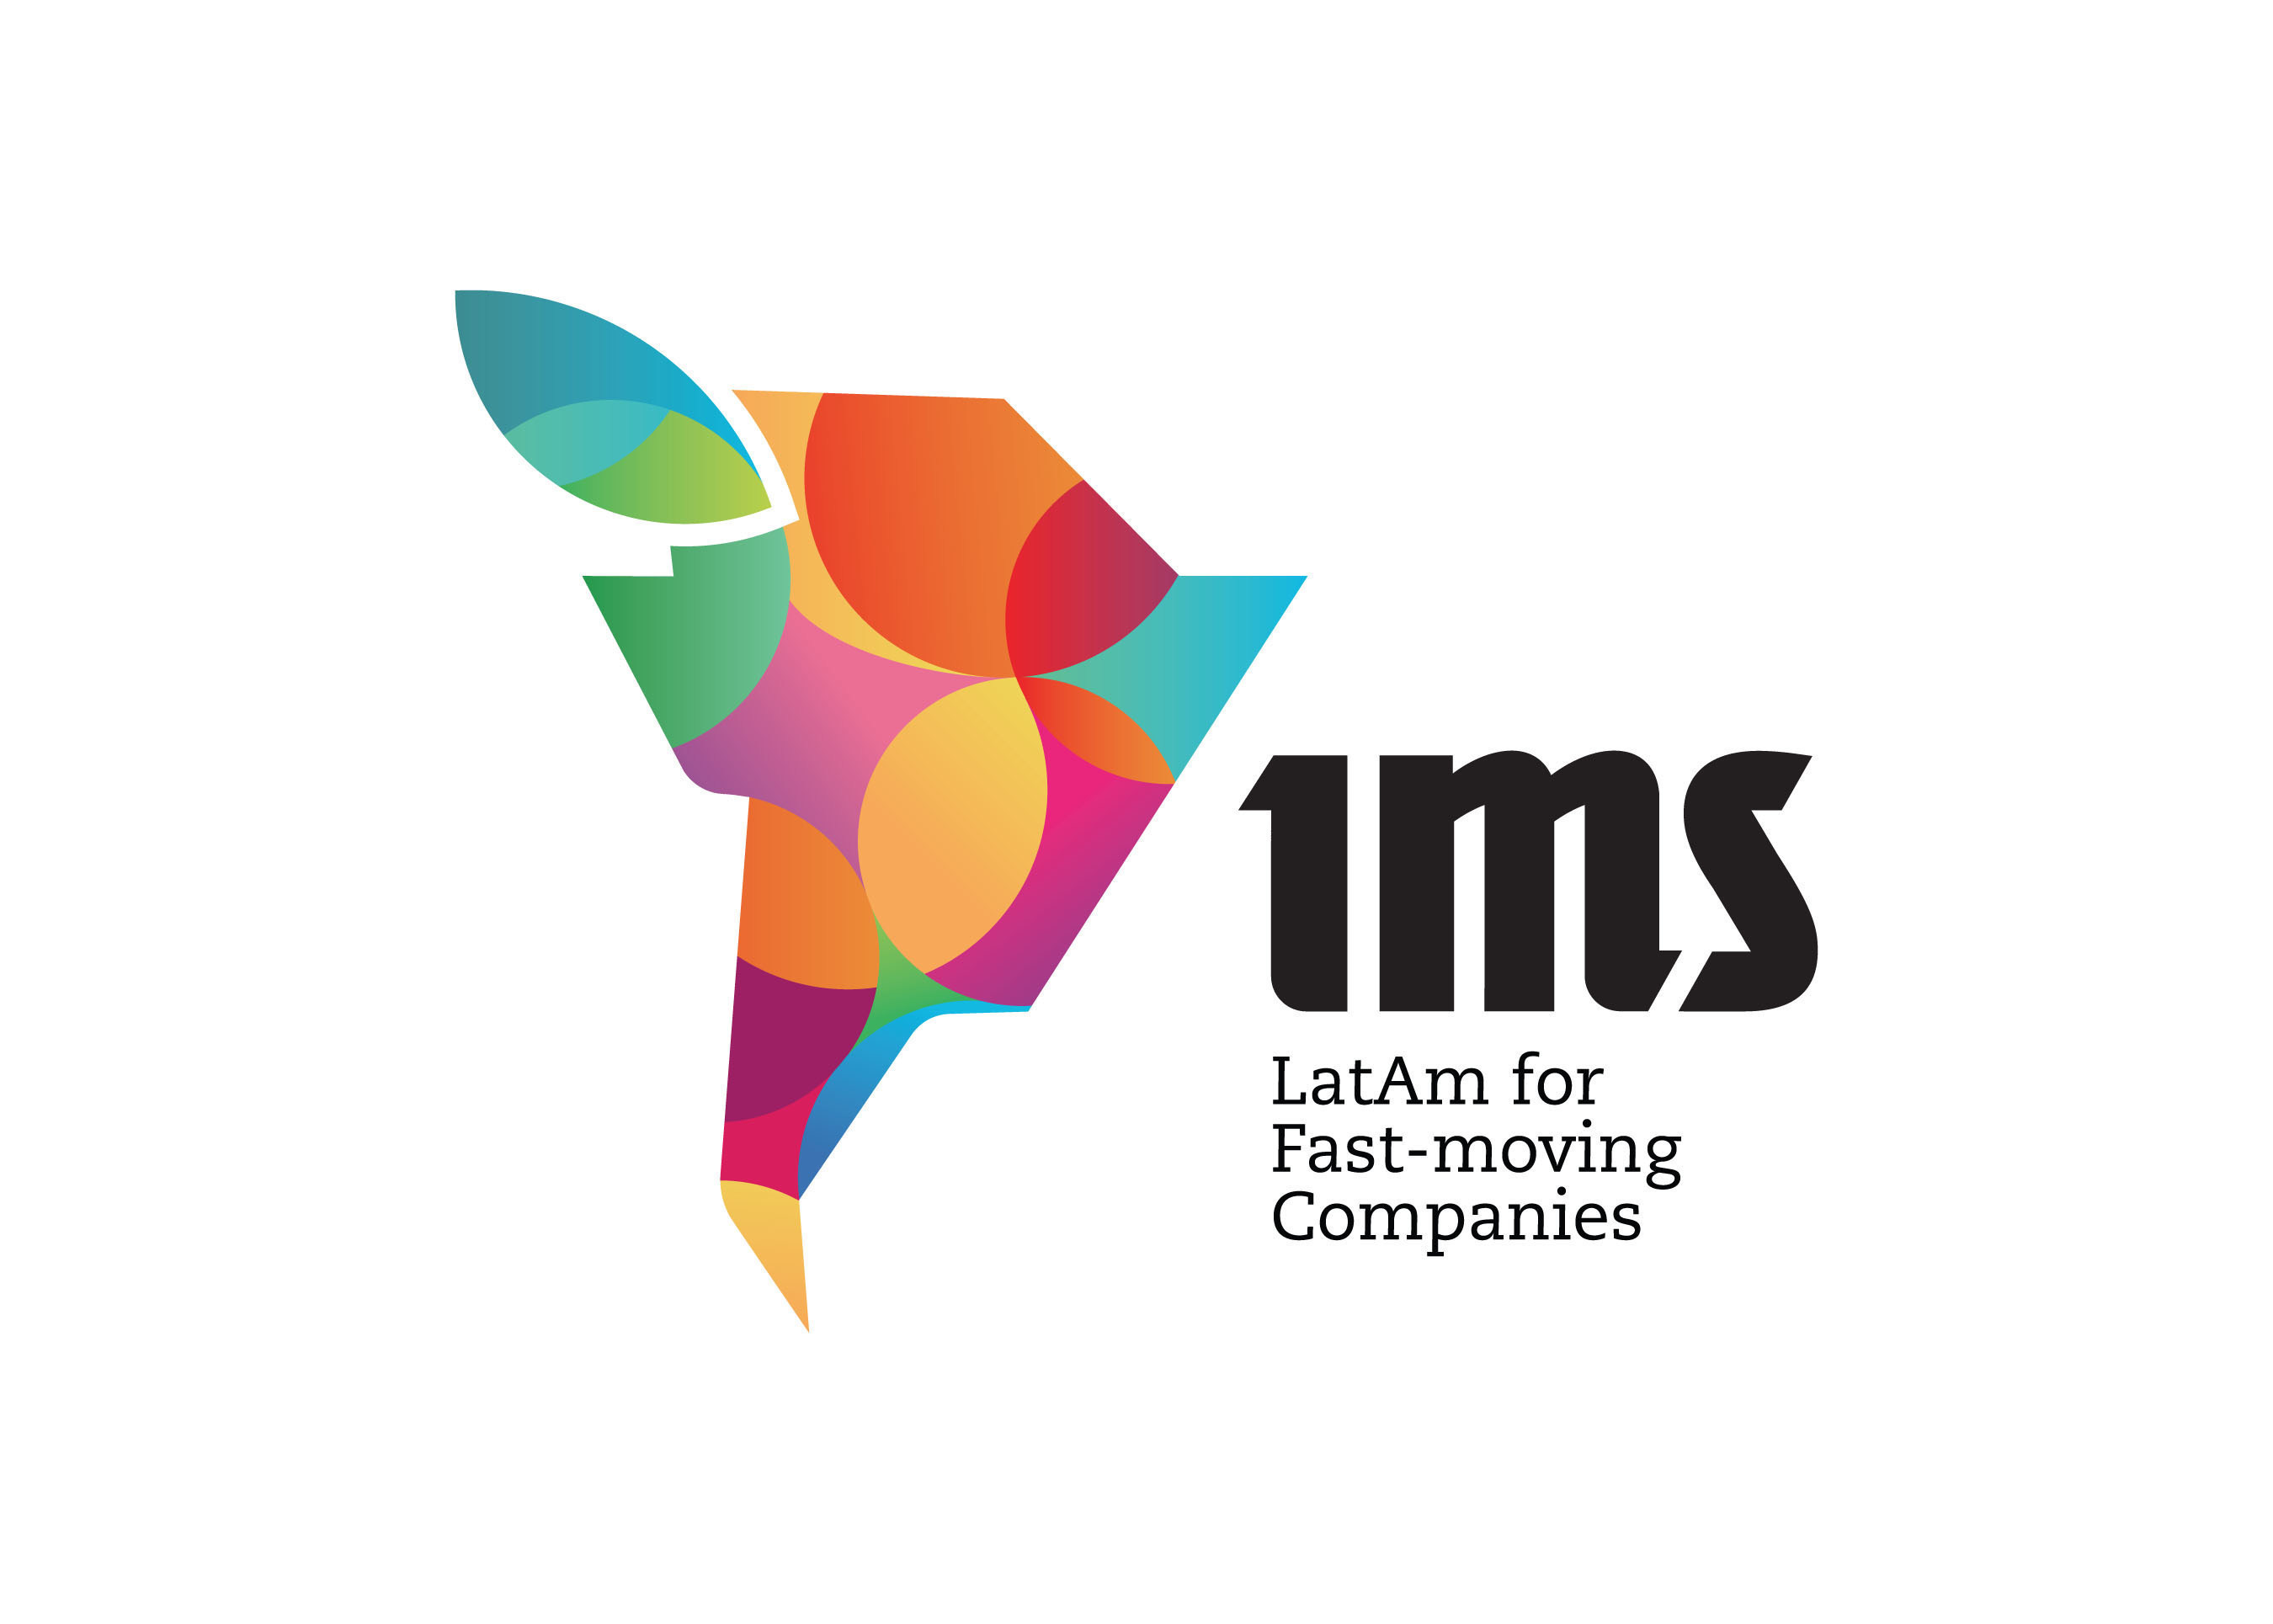 IMS Internet Media Services and Electronic Arts Collaborate to Help Brands Play-to-Win in Latin America